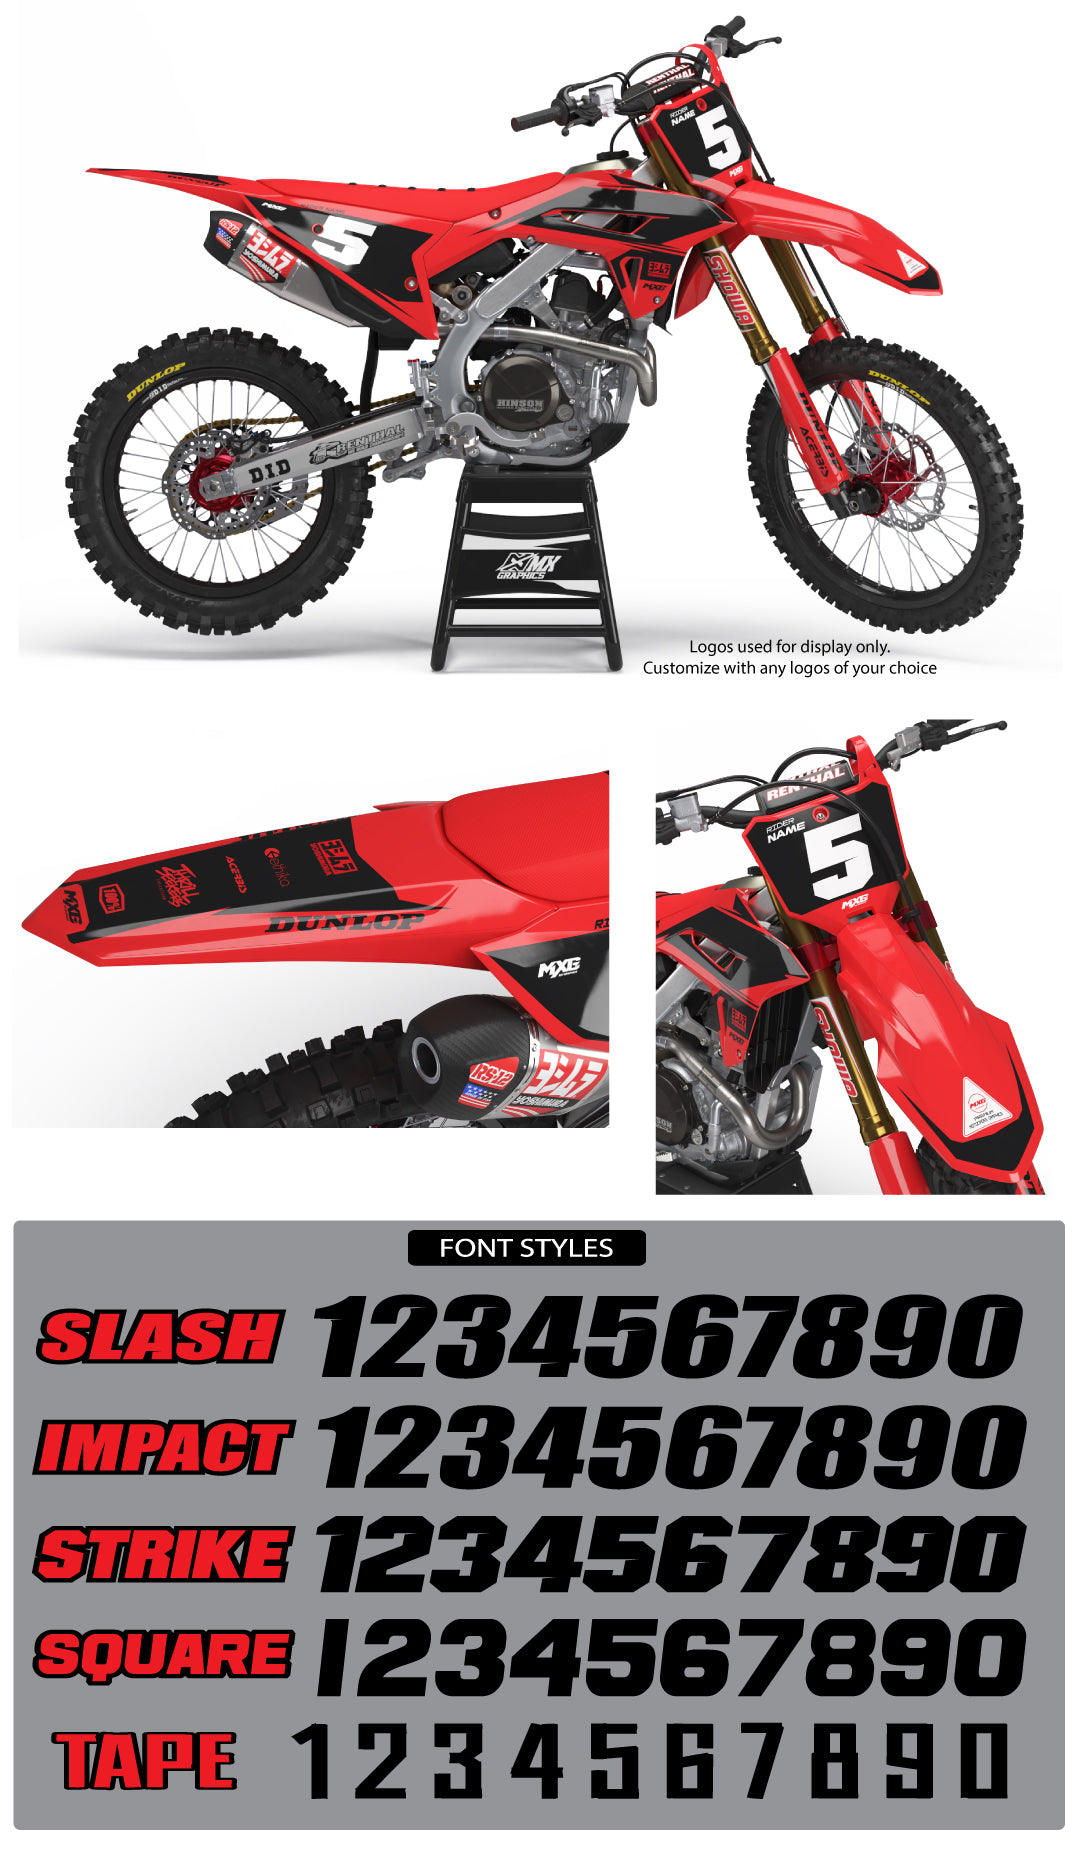 Stock Graphic Kit for Honda's